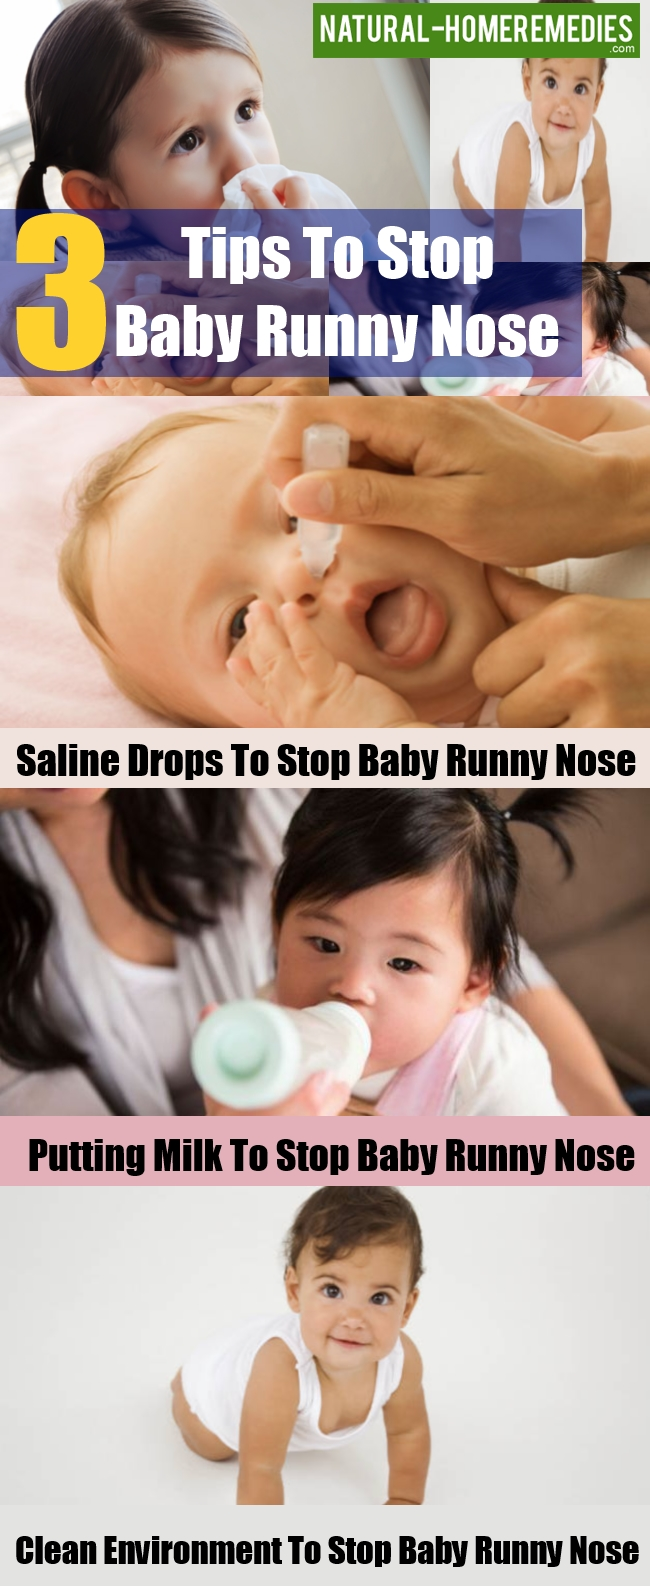 Tips To Stop Baby Runny Nose